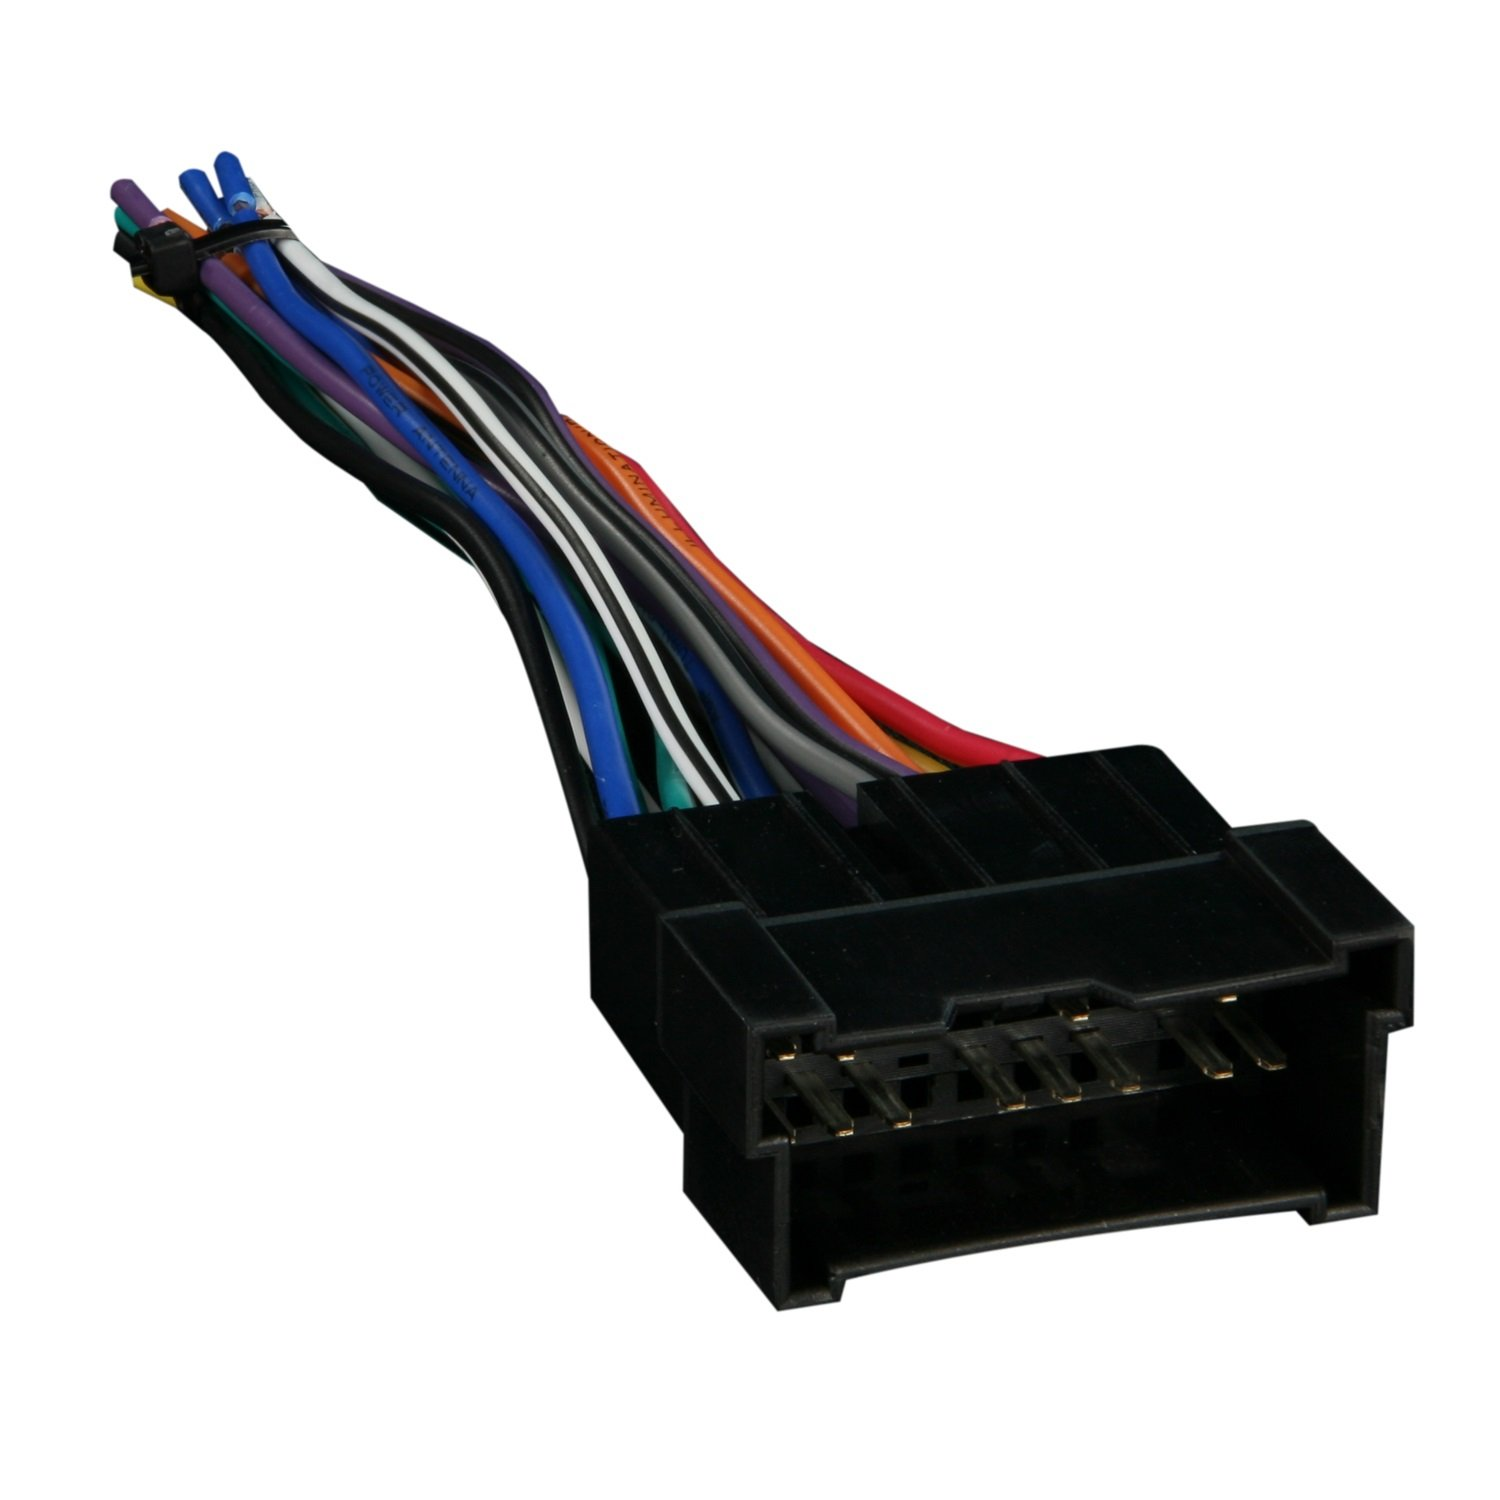 617yeBmOquL._SL1500_ amazon com metra 70 7301 radio wiring harness for hyundai kia 99 wire harness doesn't fit at creativeand.co